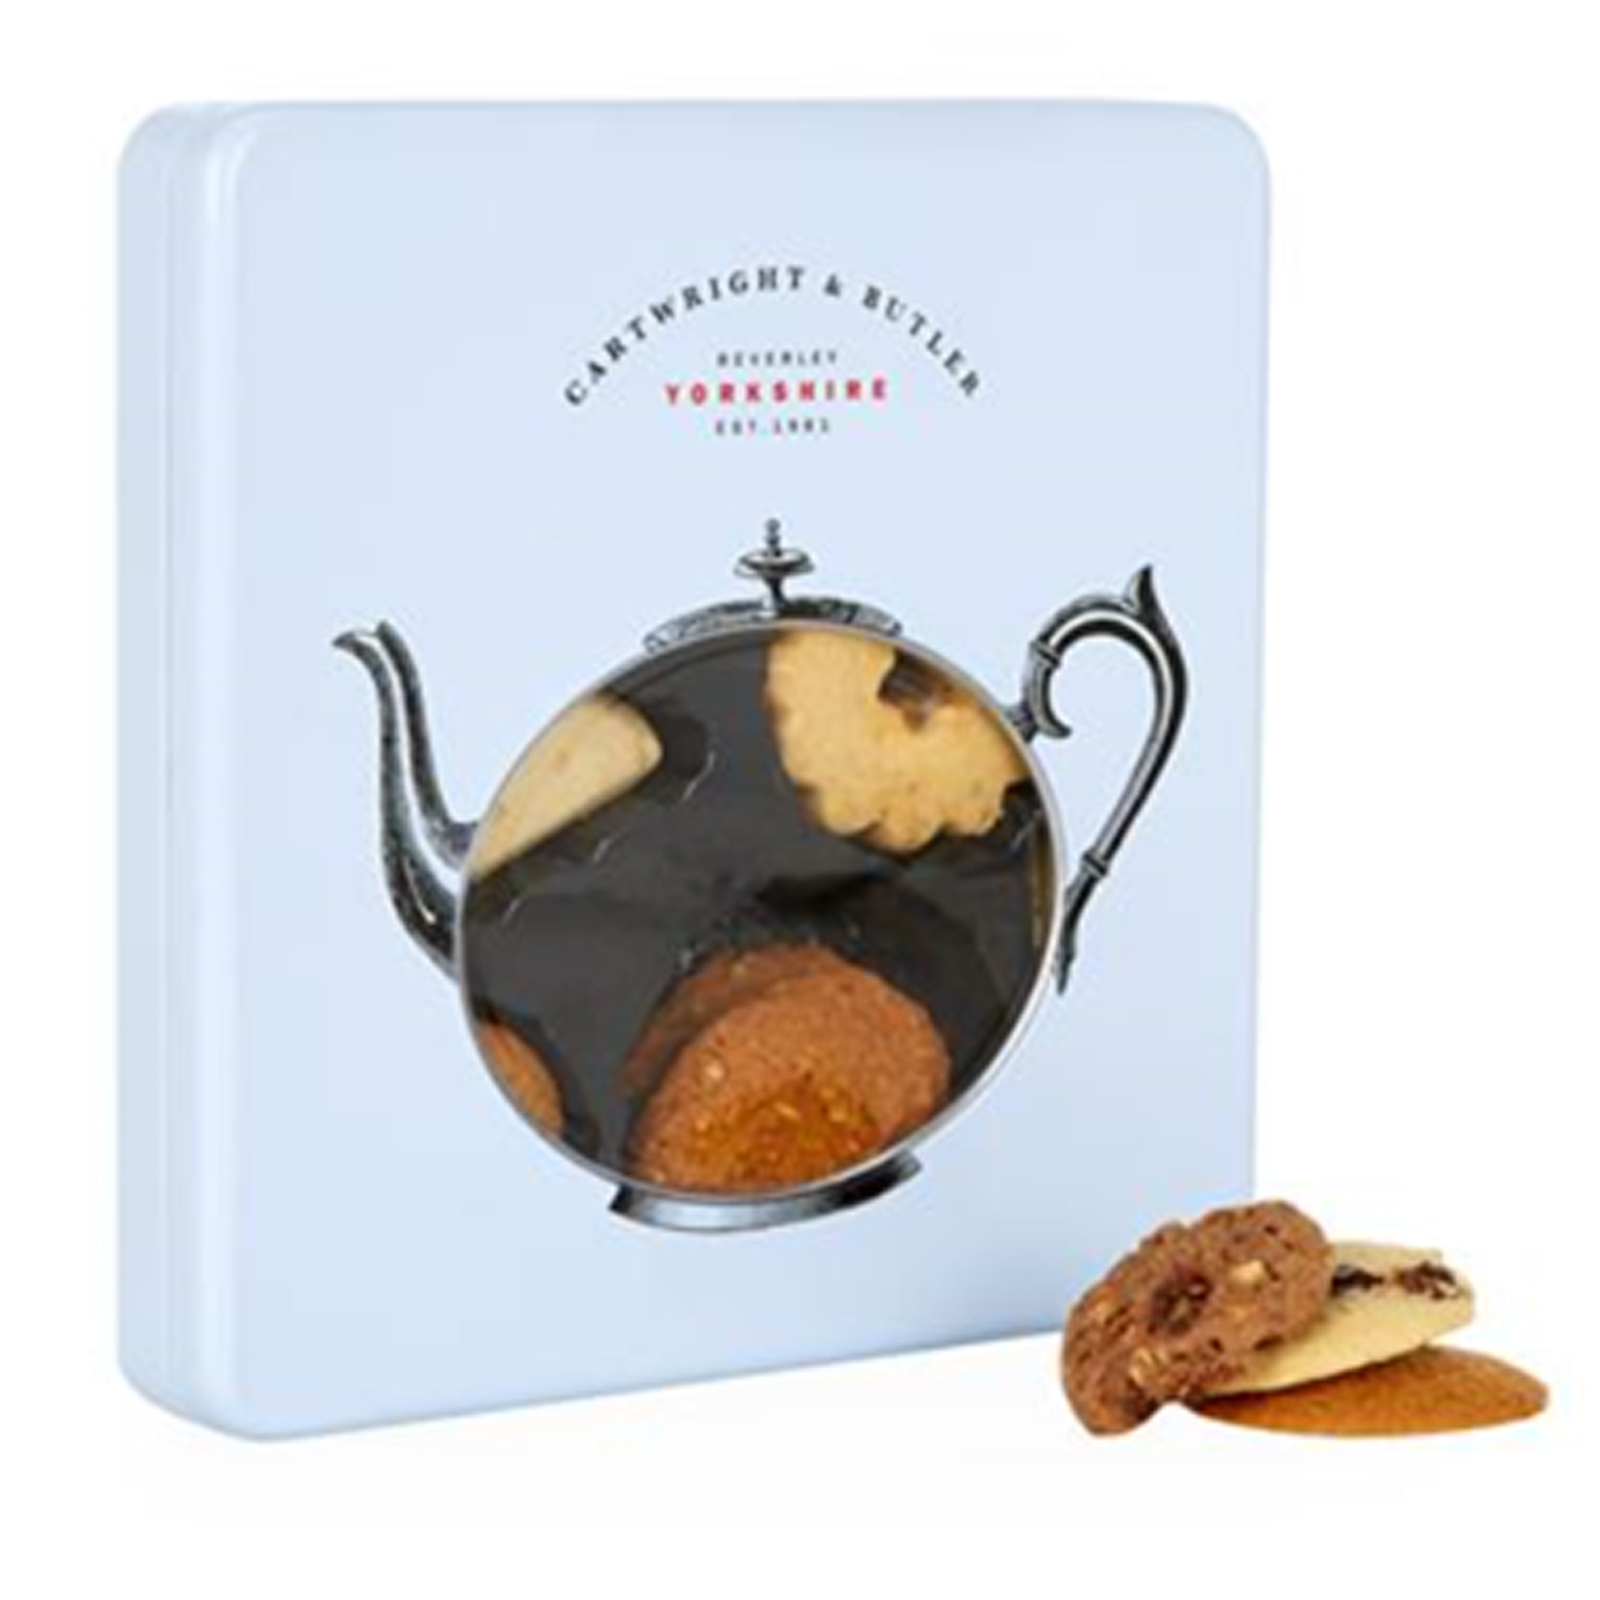 Luxury Biscuit Assortment by Cartwright & Butler